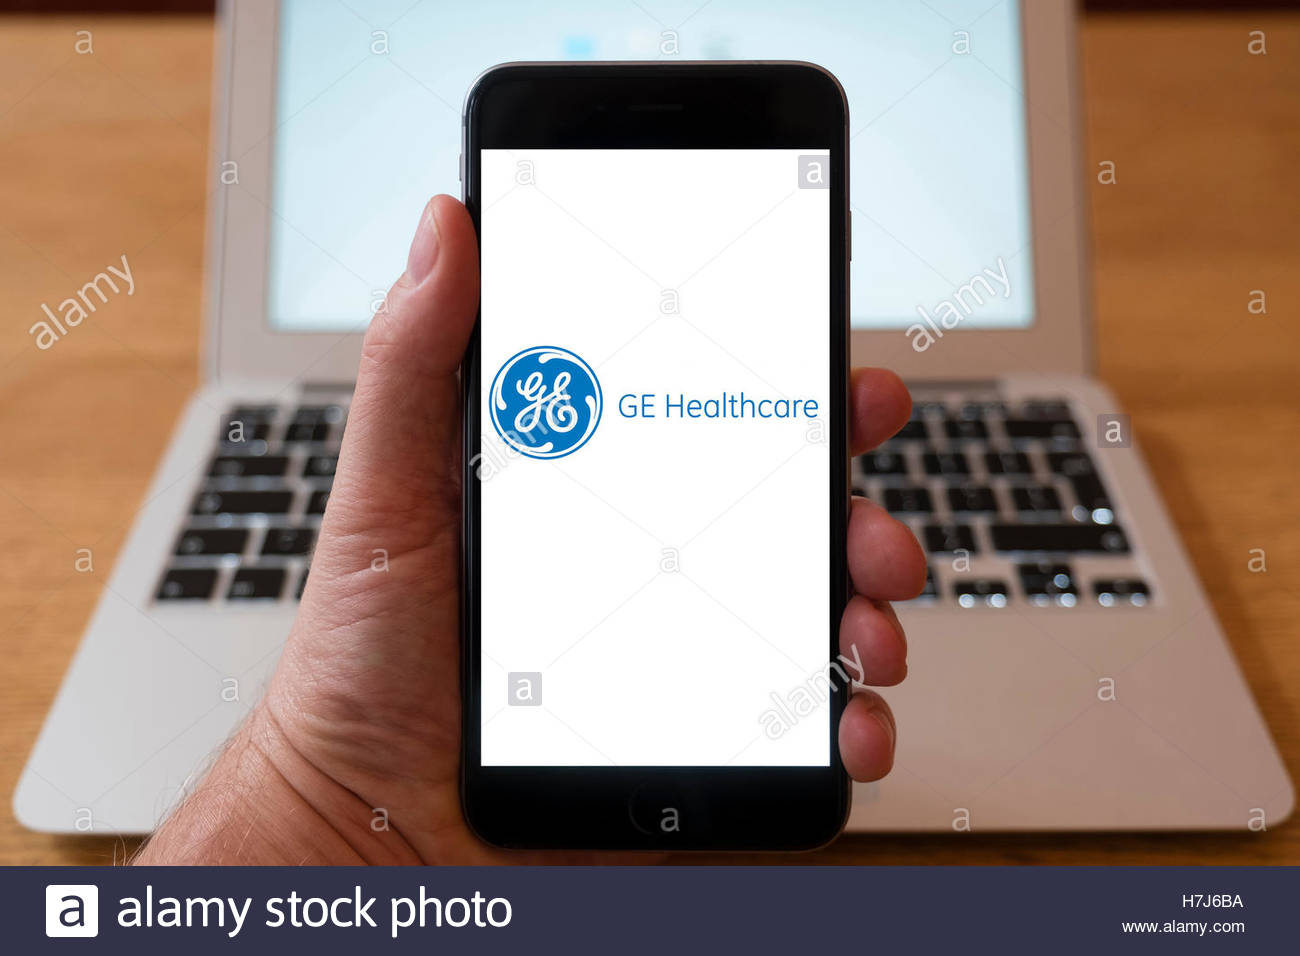 Using iPhone smart phone to display logo of GE Healthcare; Stock Photo